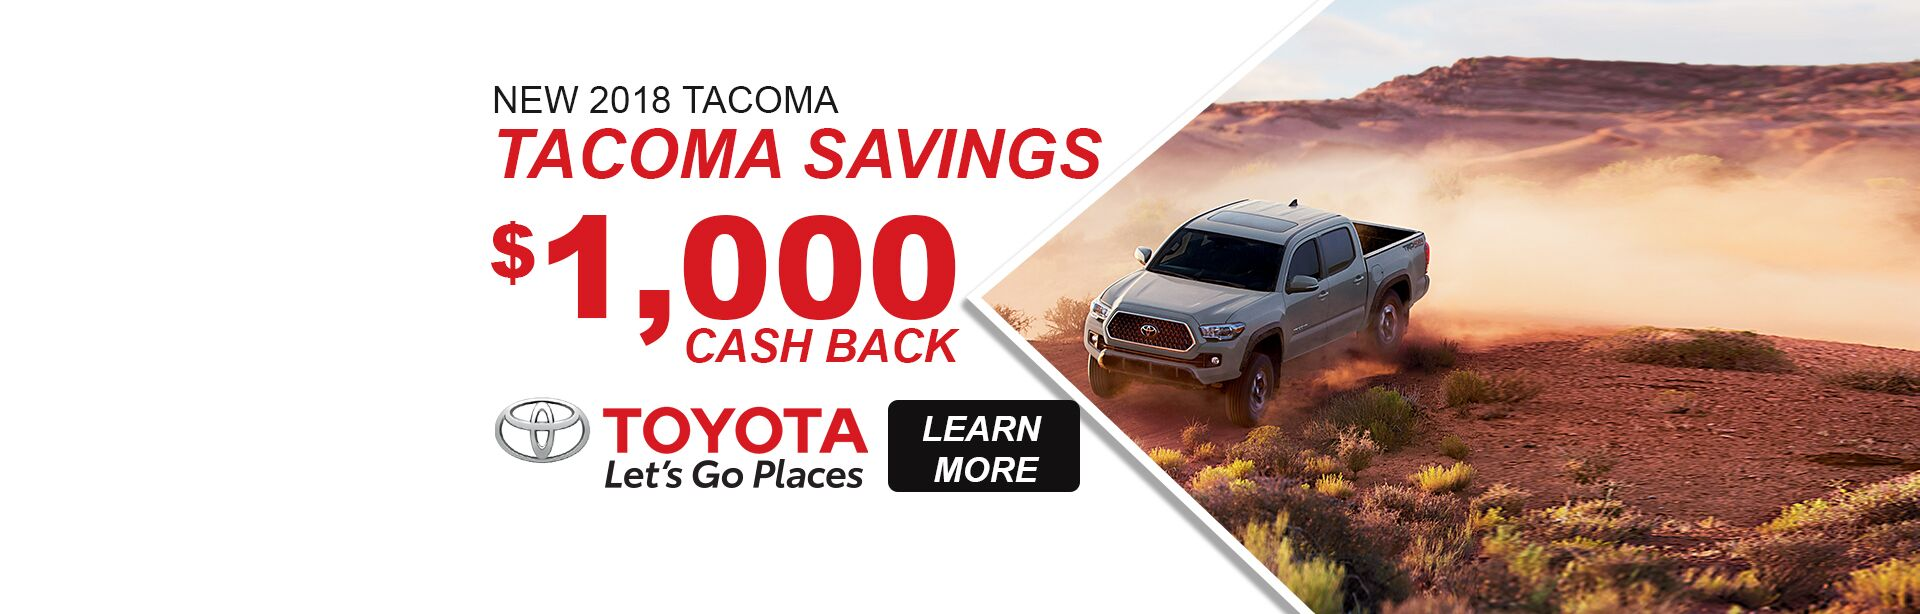 2018 Tacoma Savings